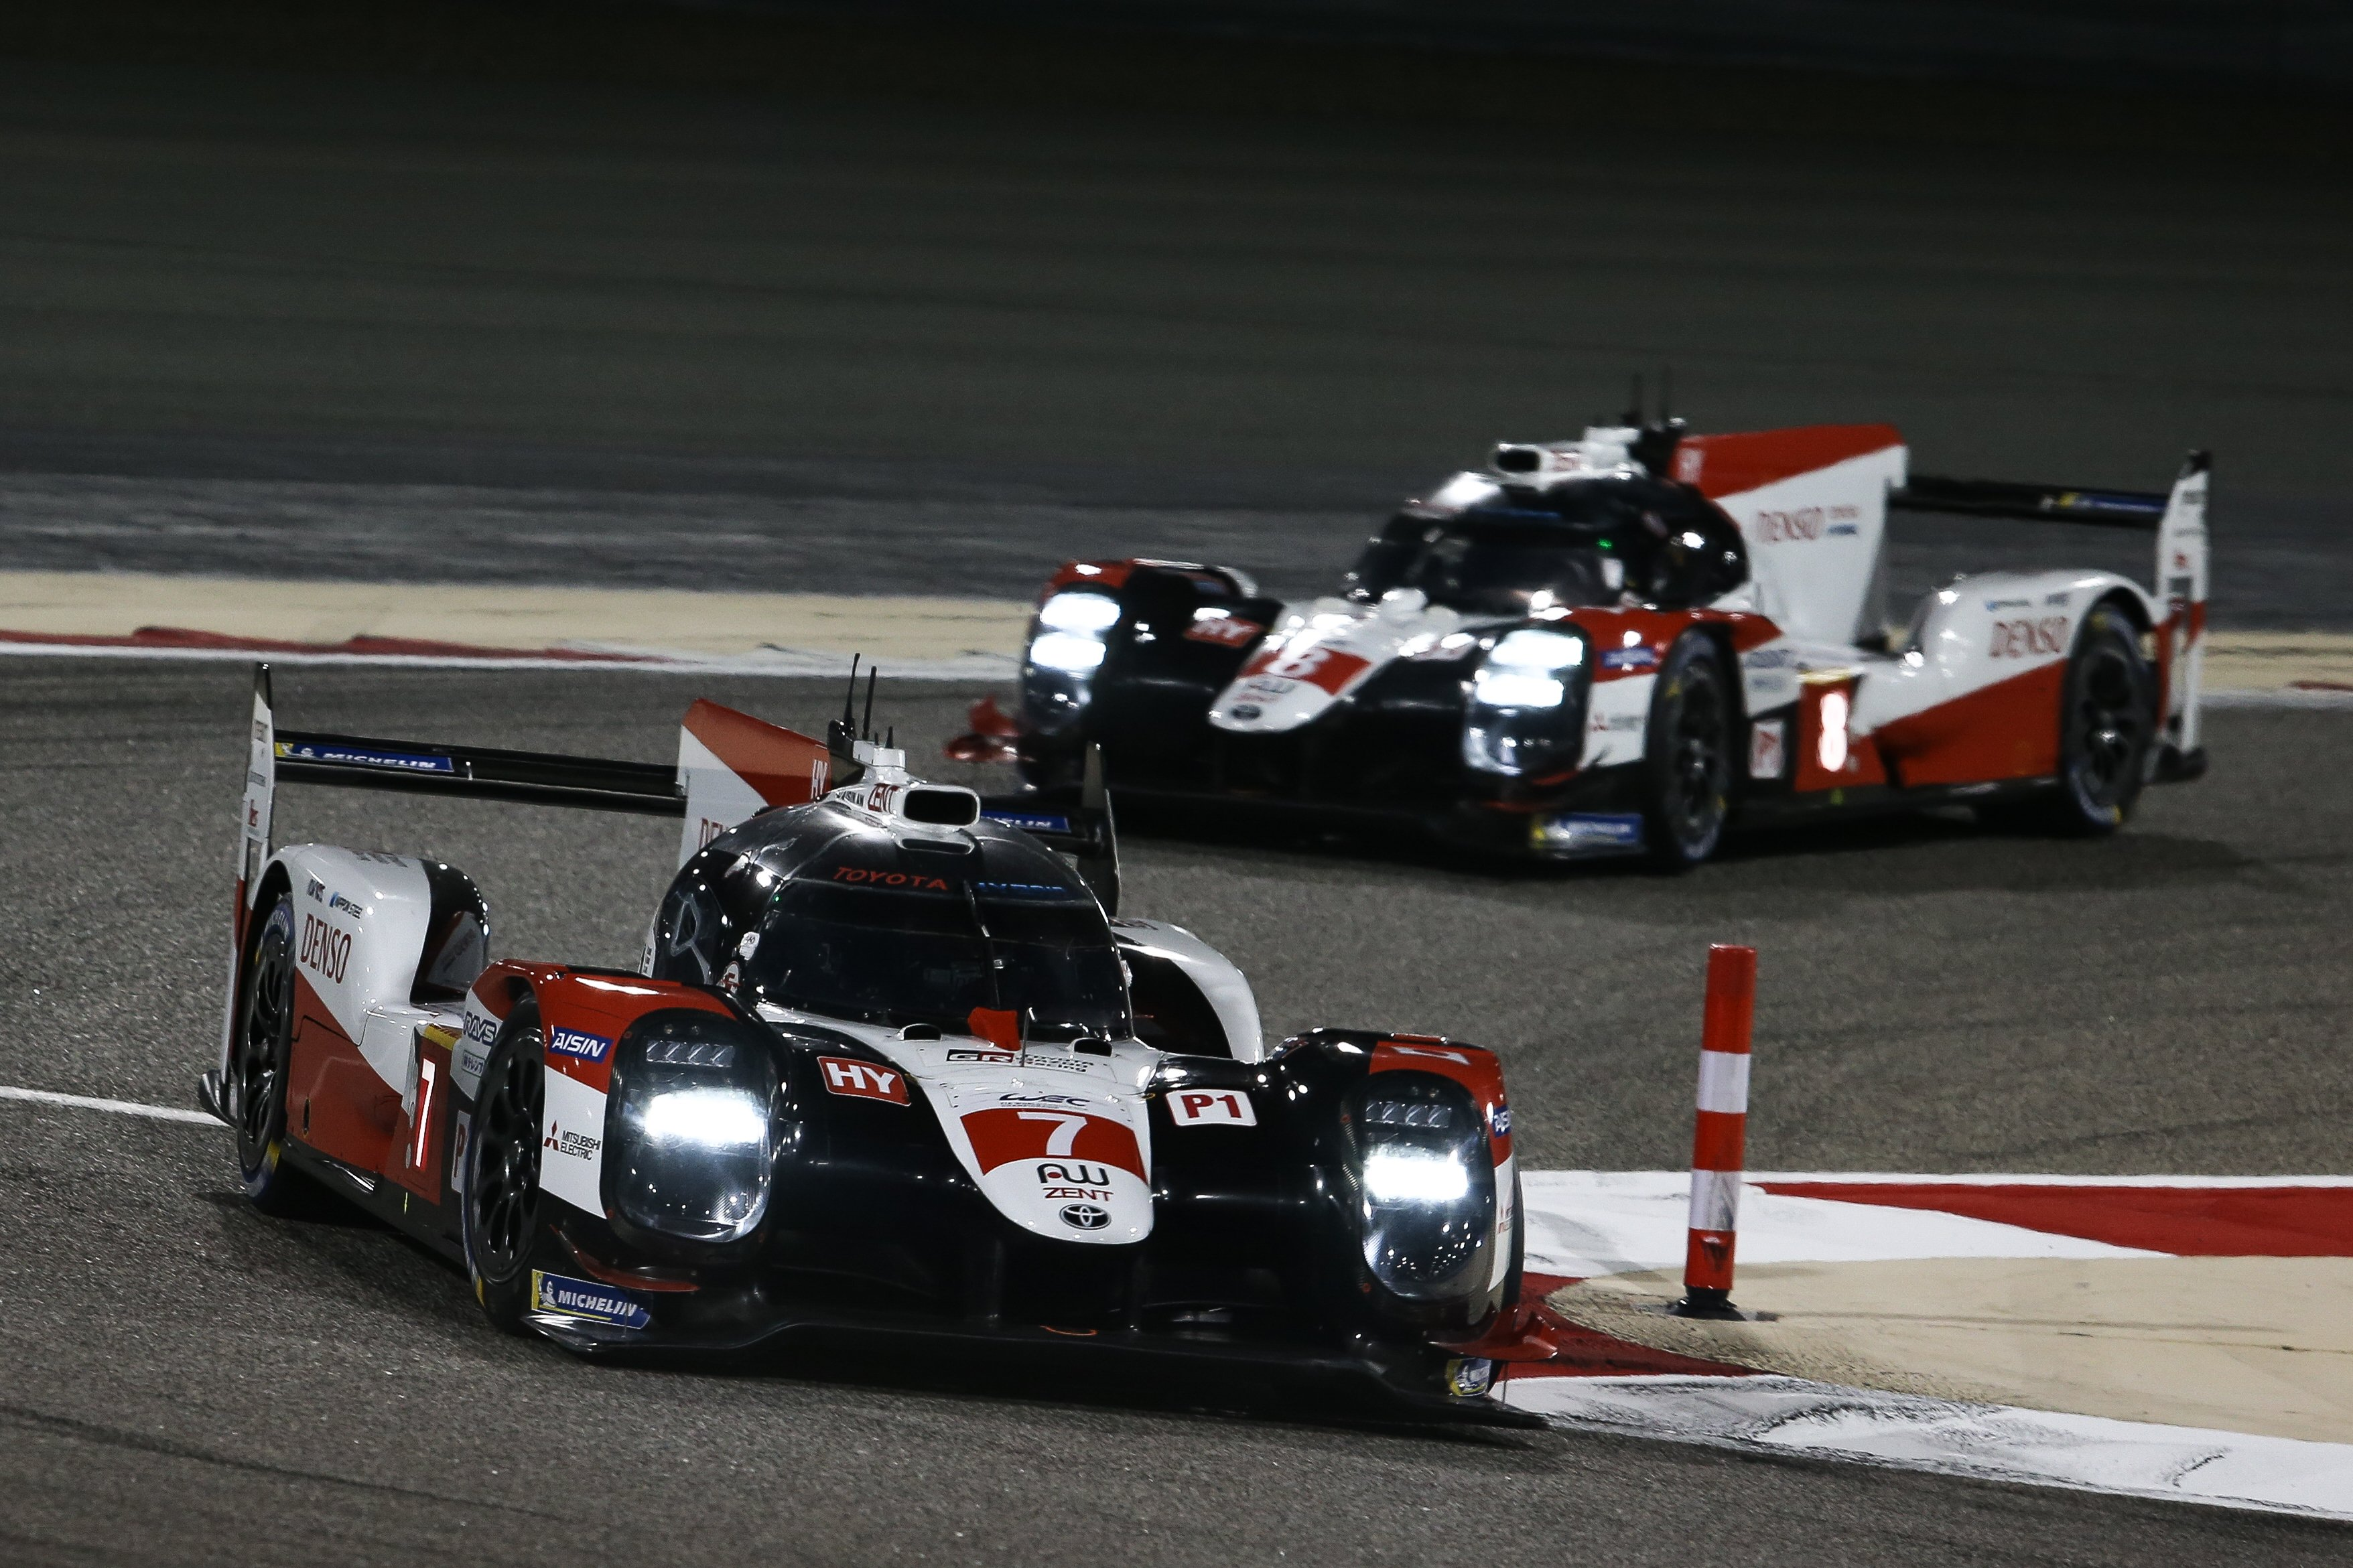 Bahrain 8h: Toyota take surprise 1-2 as lap one drama decides overall win